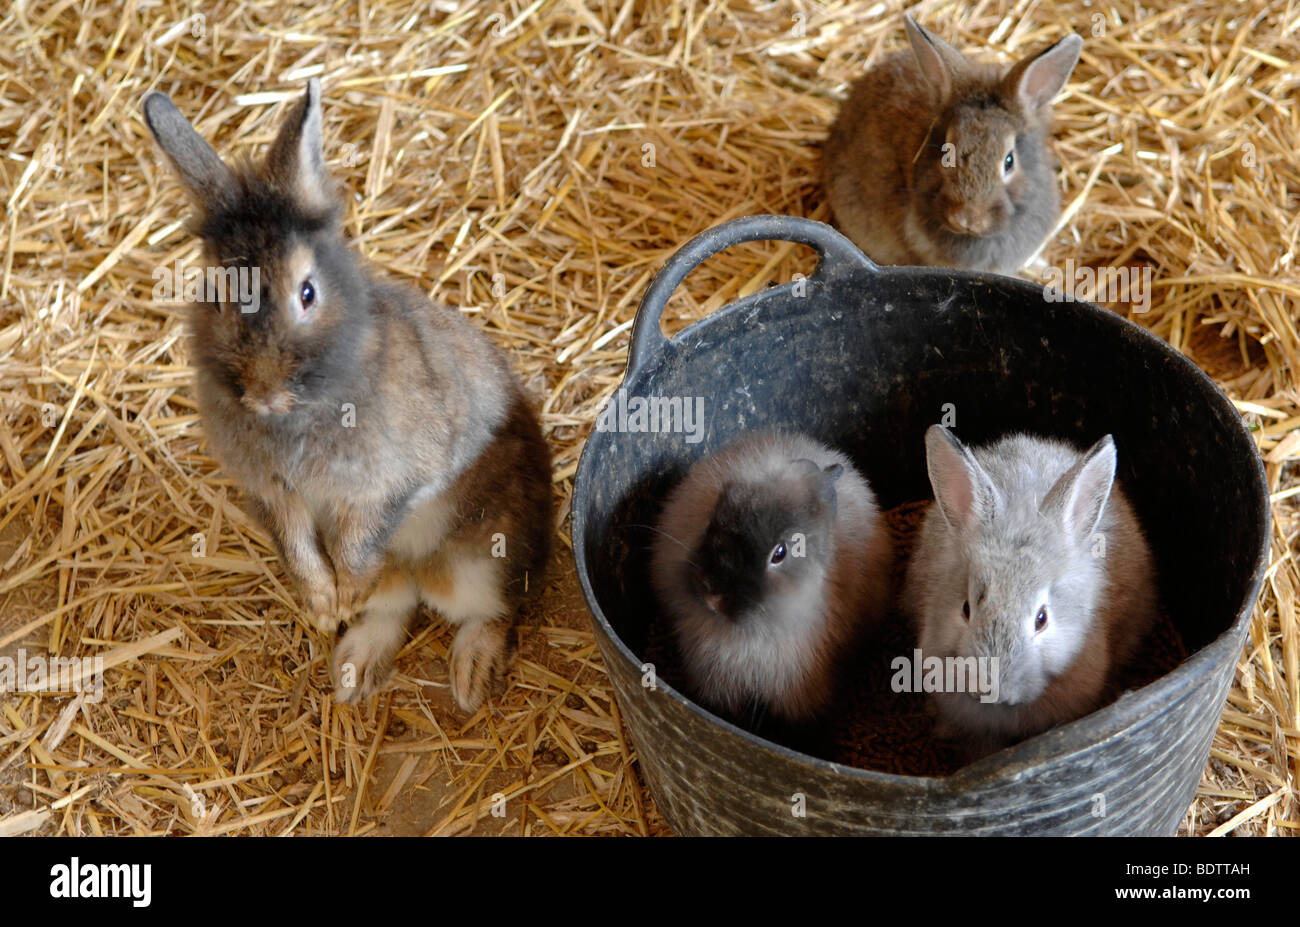 rabbits in bucket - Stock Image